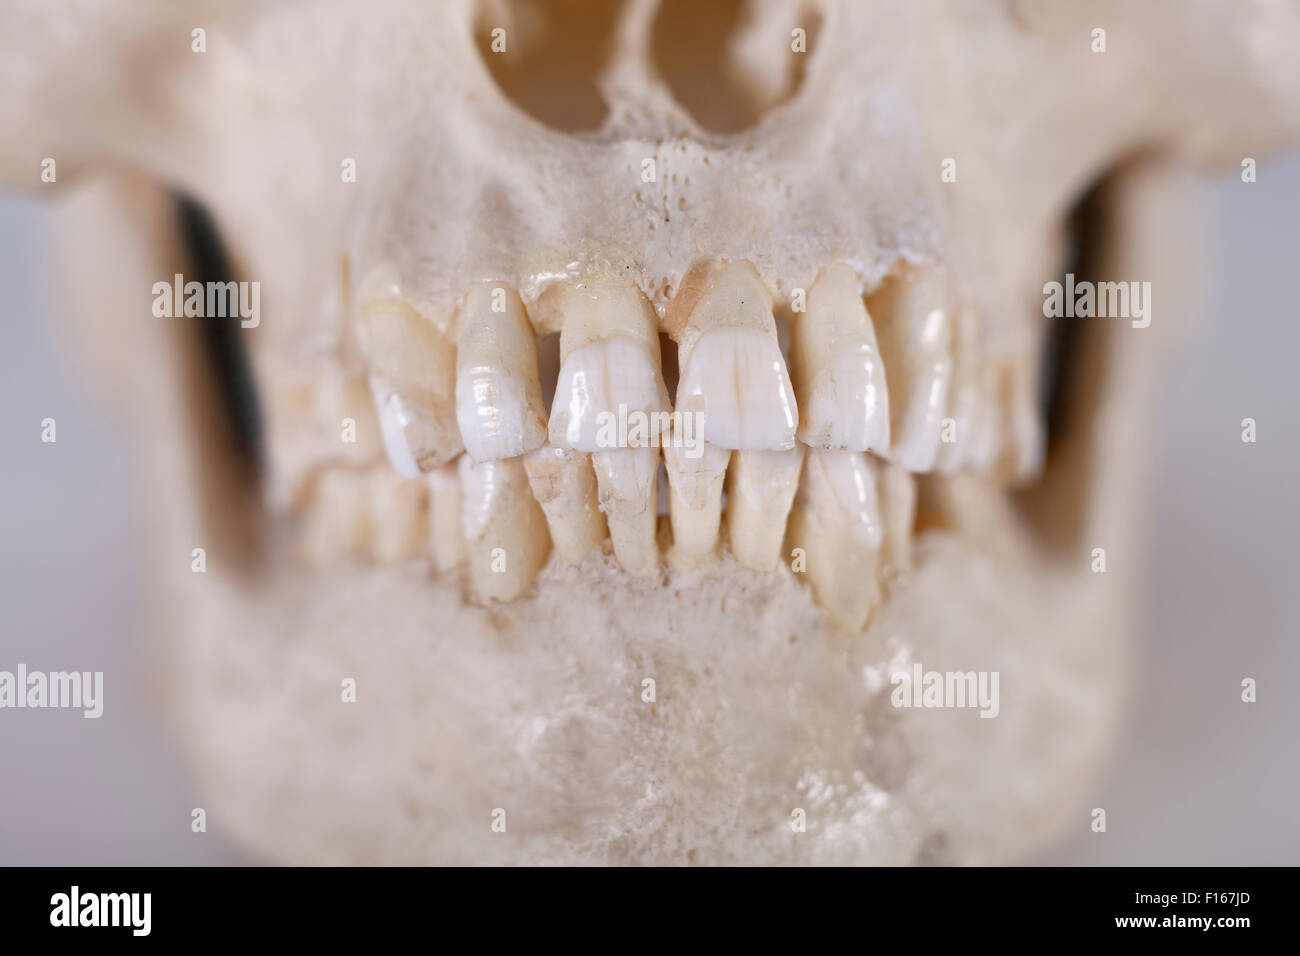 Detail of a human skull - Stock Image